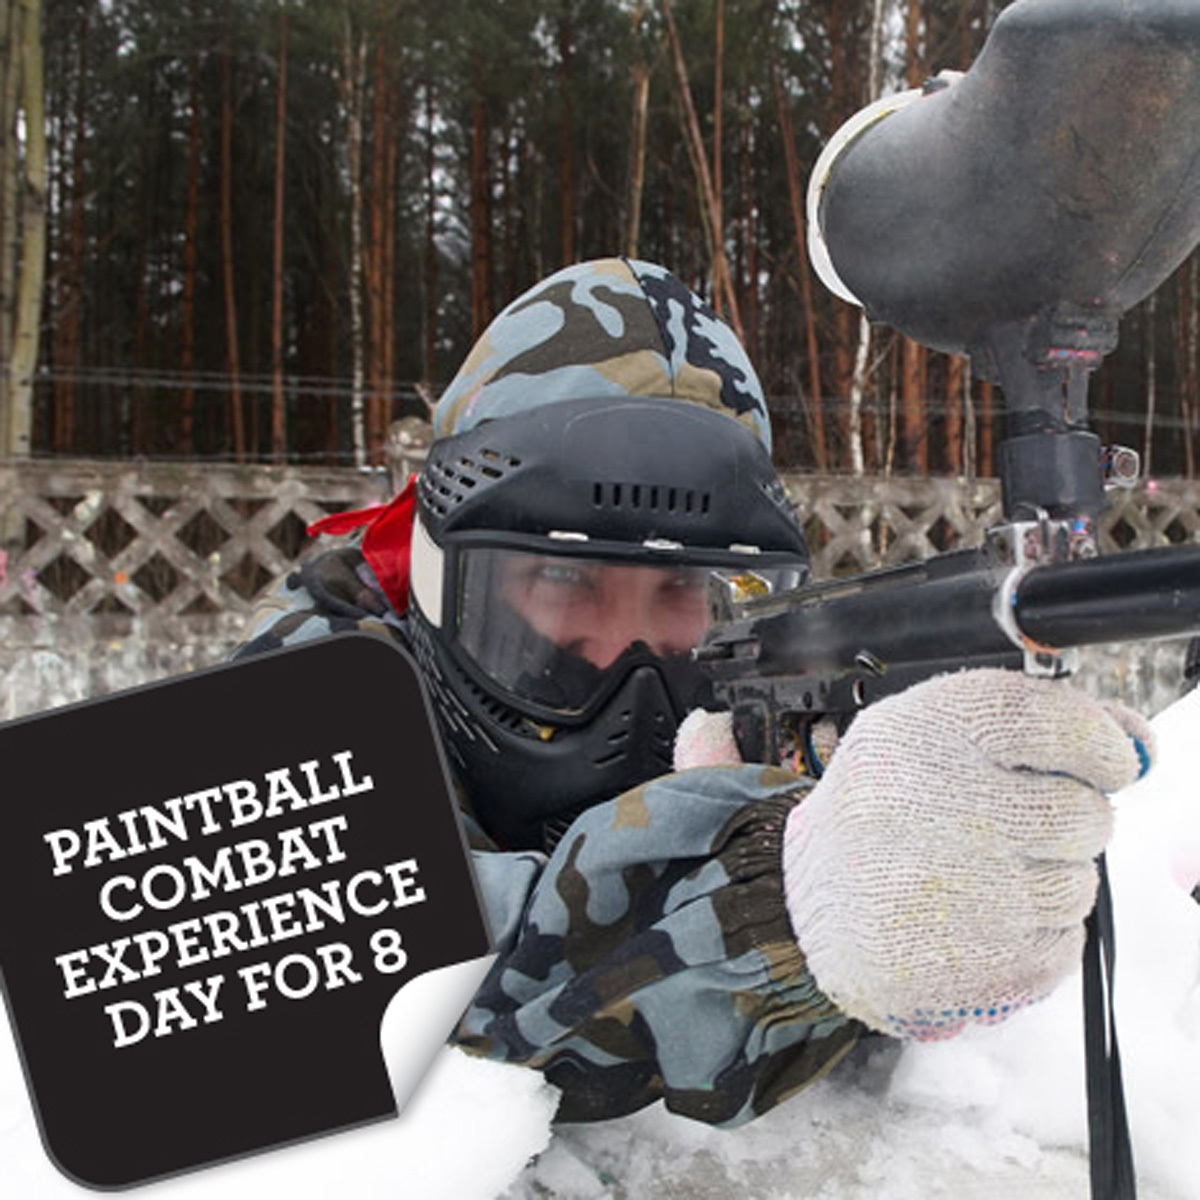 Paintball Combat Experience Day For 8